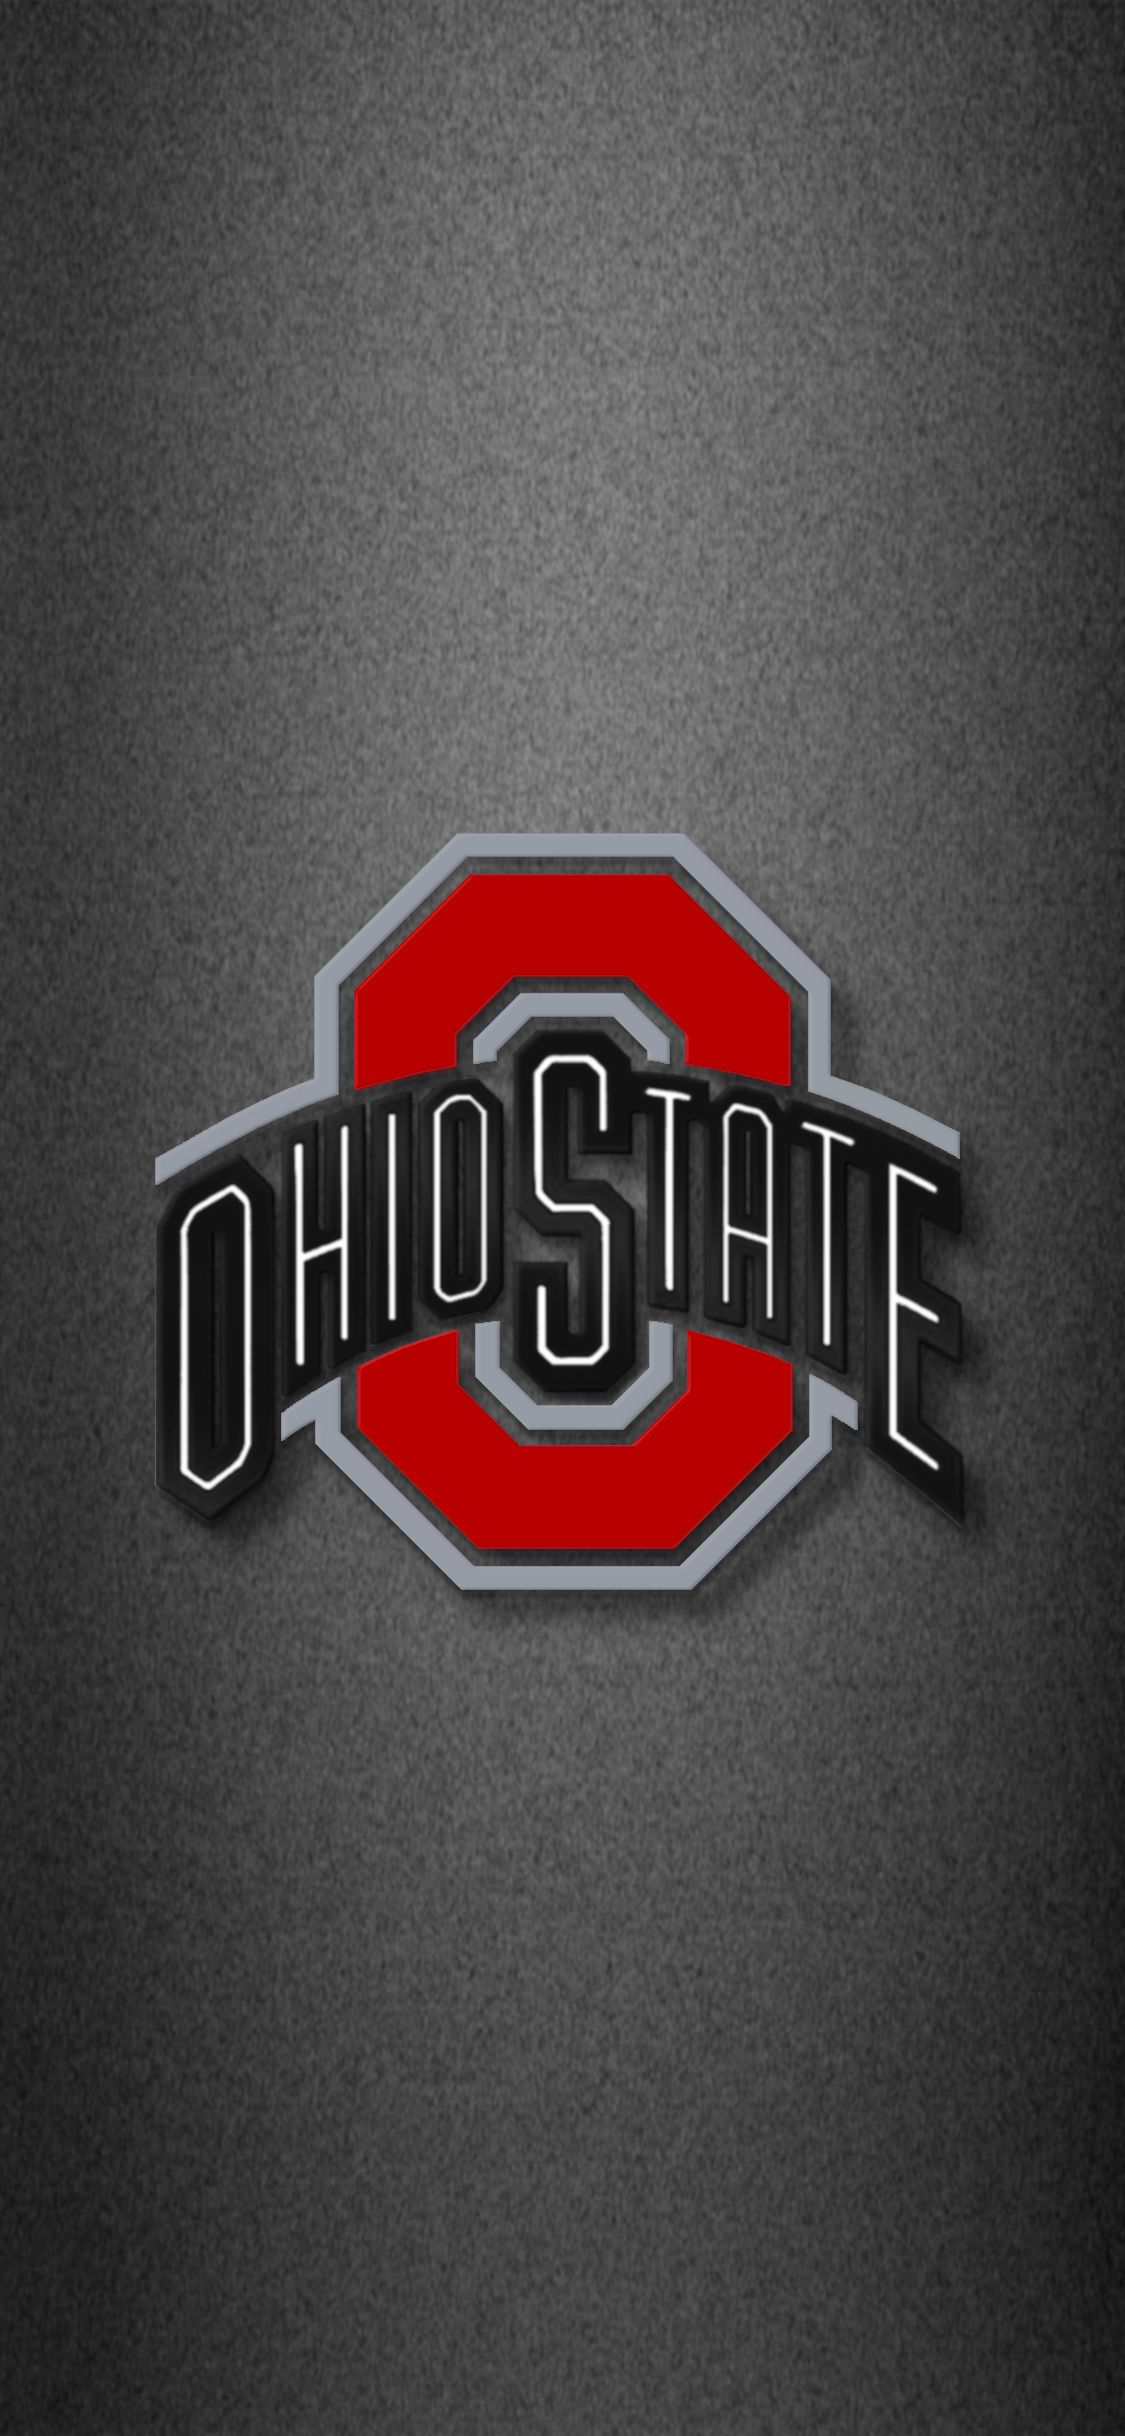 Osu Phone Wallpaper 1011 Iphone X Ohio State Wallpaper Ohio State Team Wallpaper